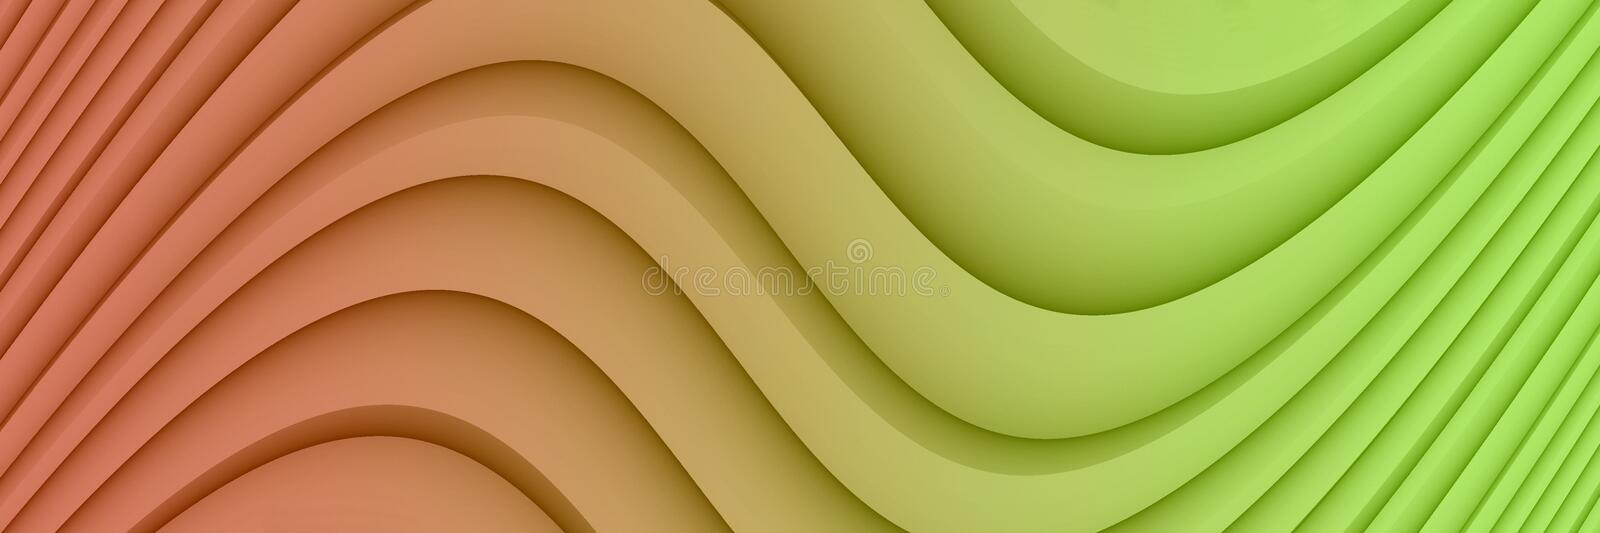 Colorful bright coral and lime green abstract background illustration with soft curves and lines royalty free illustration